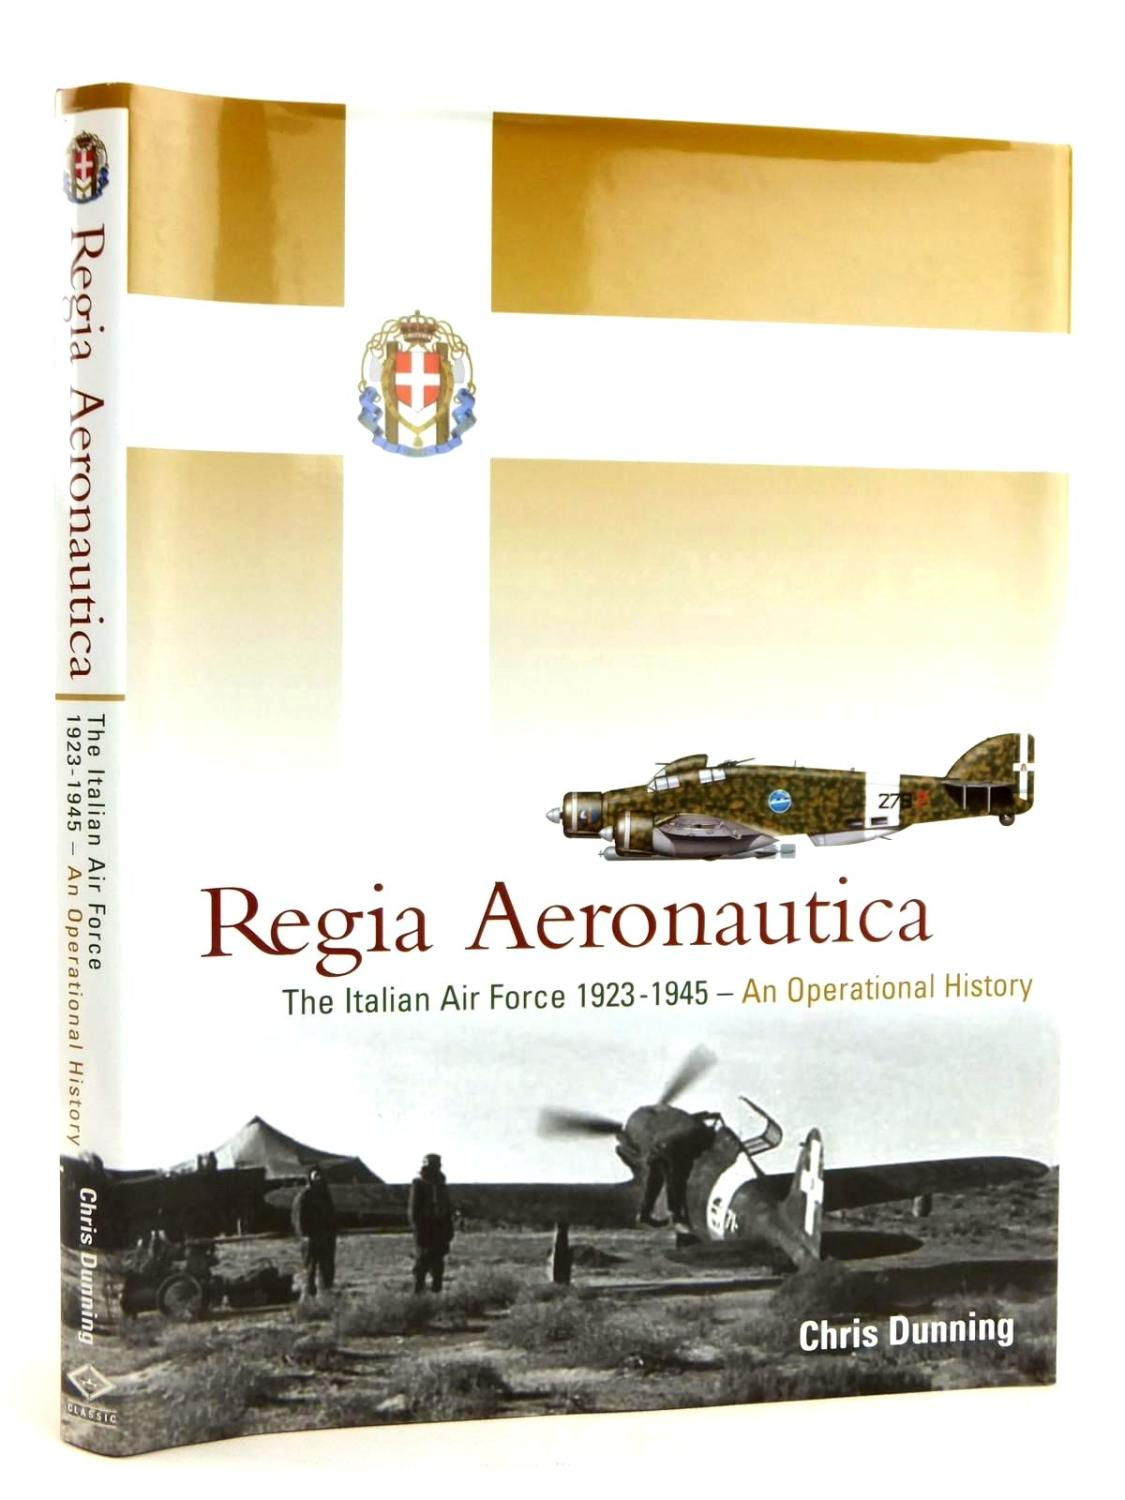 REGIA AERONAUTICA THE ITALIAN AIR FORCE 1923